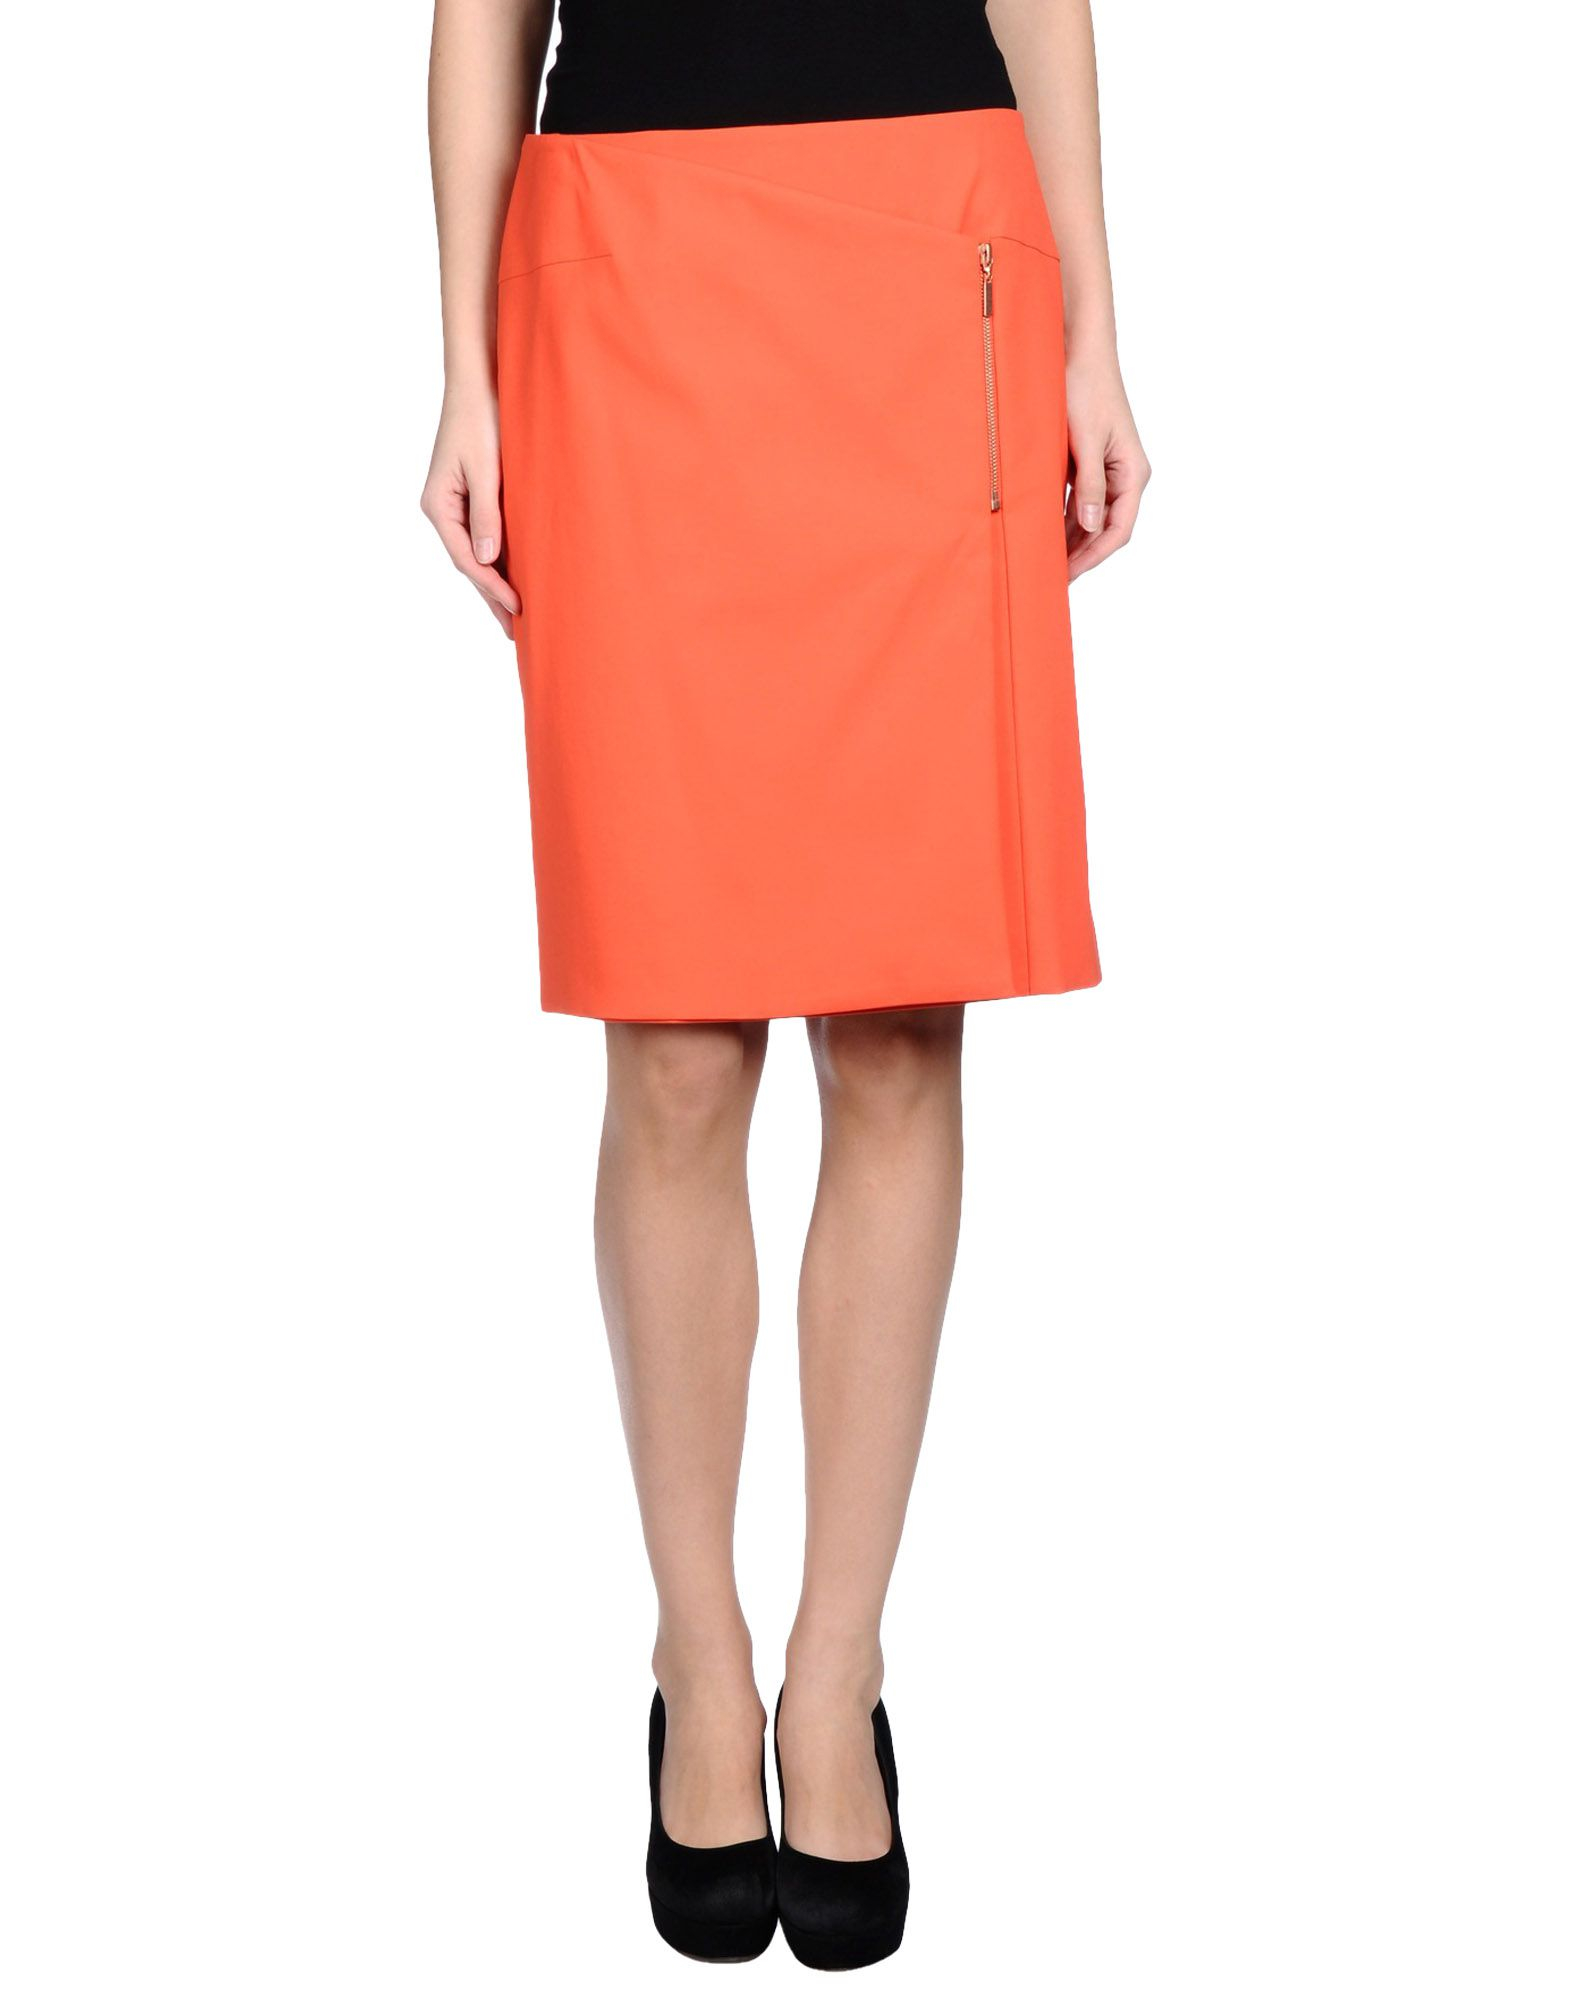 cedric charlier knee length skirt in pink coral save